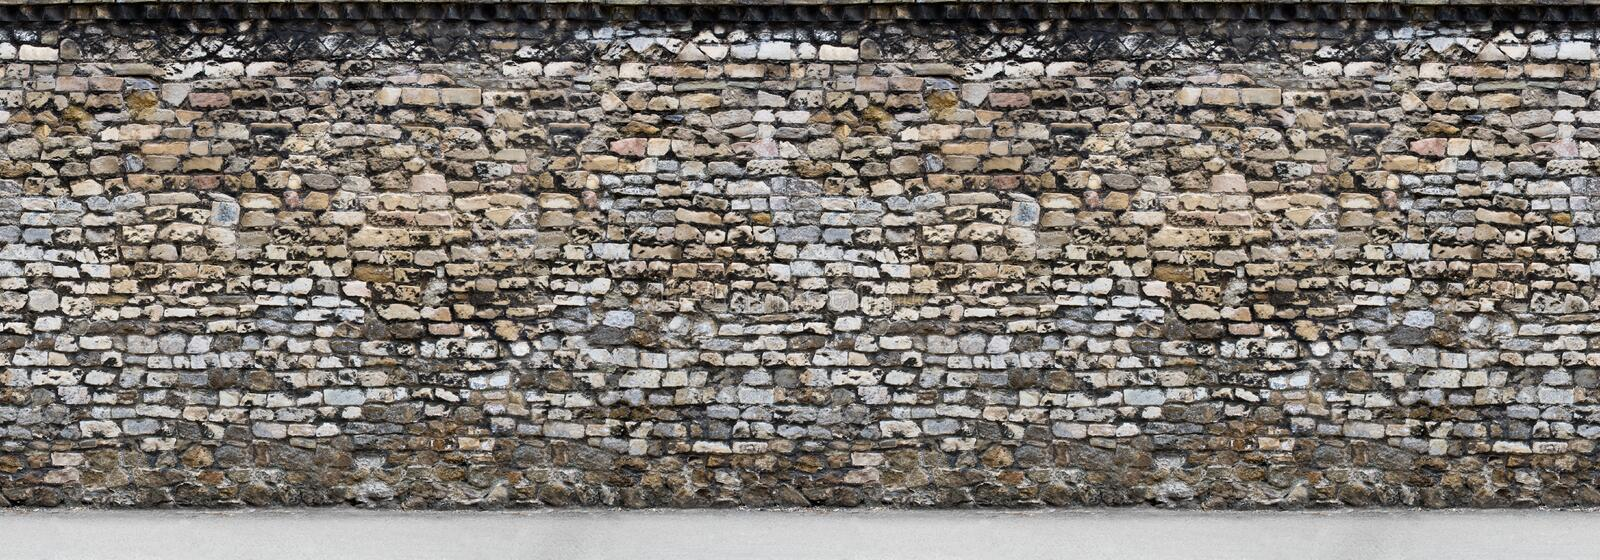 Old brown stone wall with part of the road Horizontal Seamless royalty free stock image